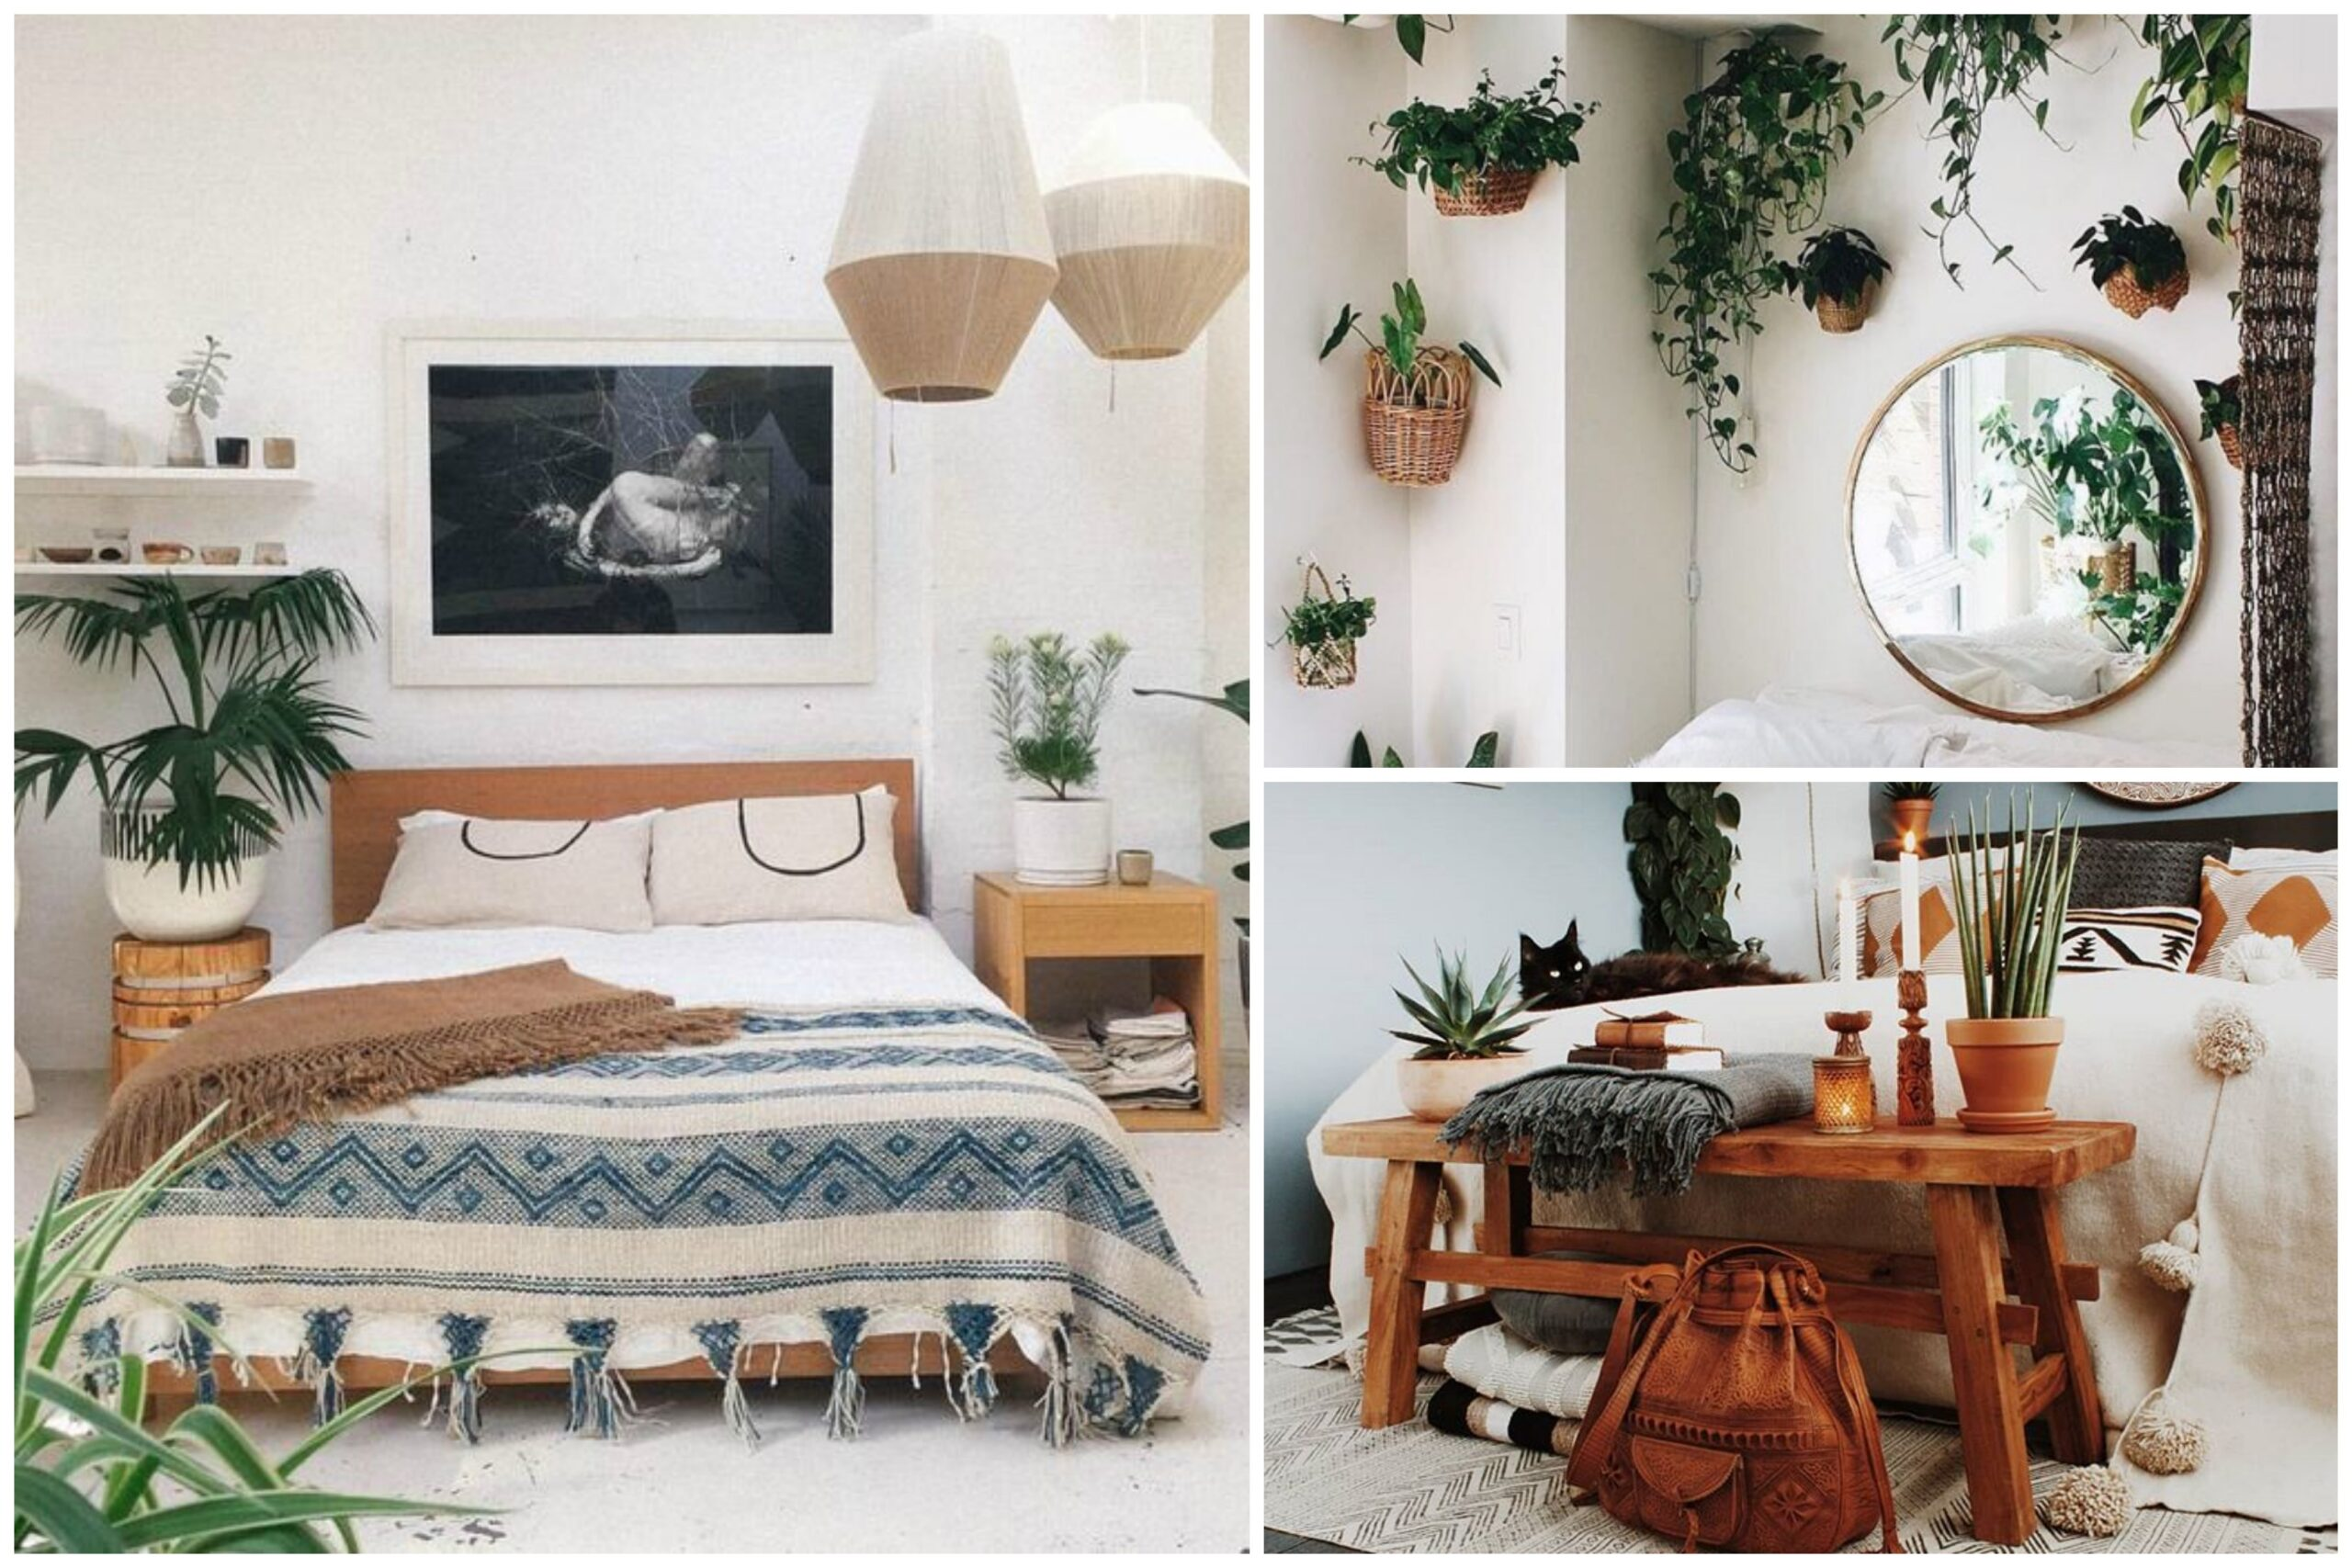 11 Boho Bedroom Ideas to Decorate Your Boho Chic Room ...